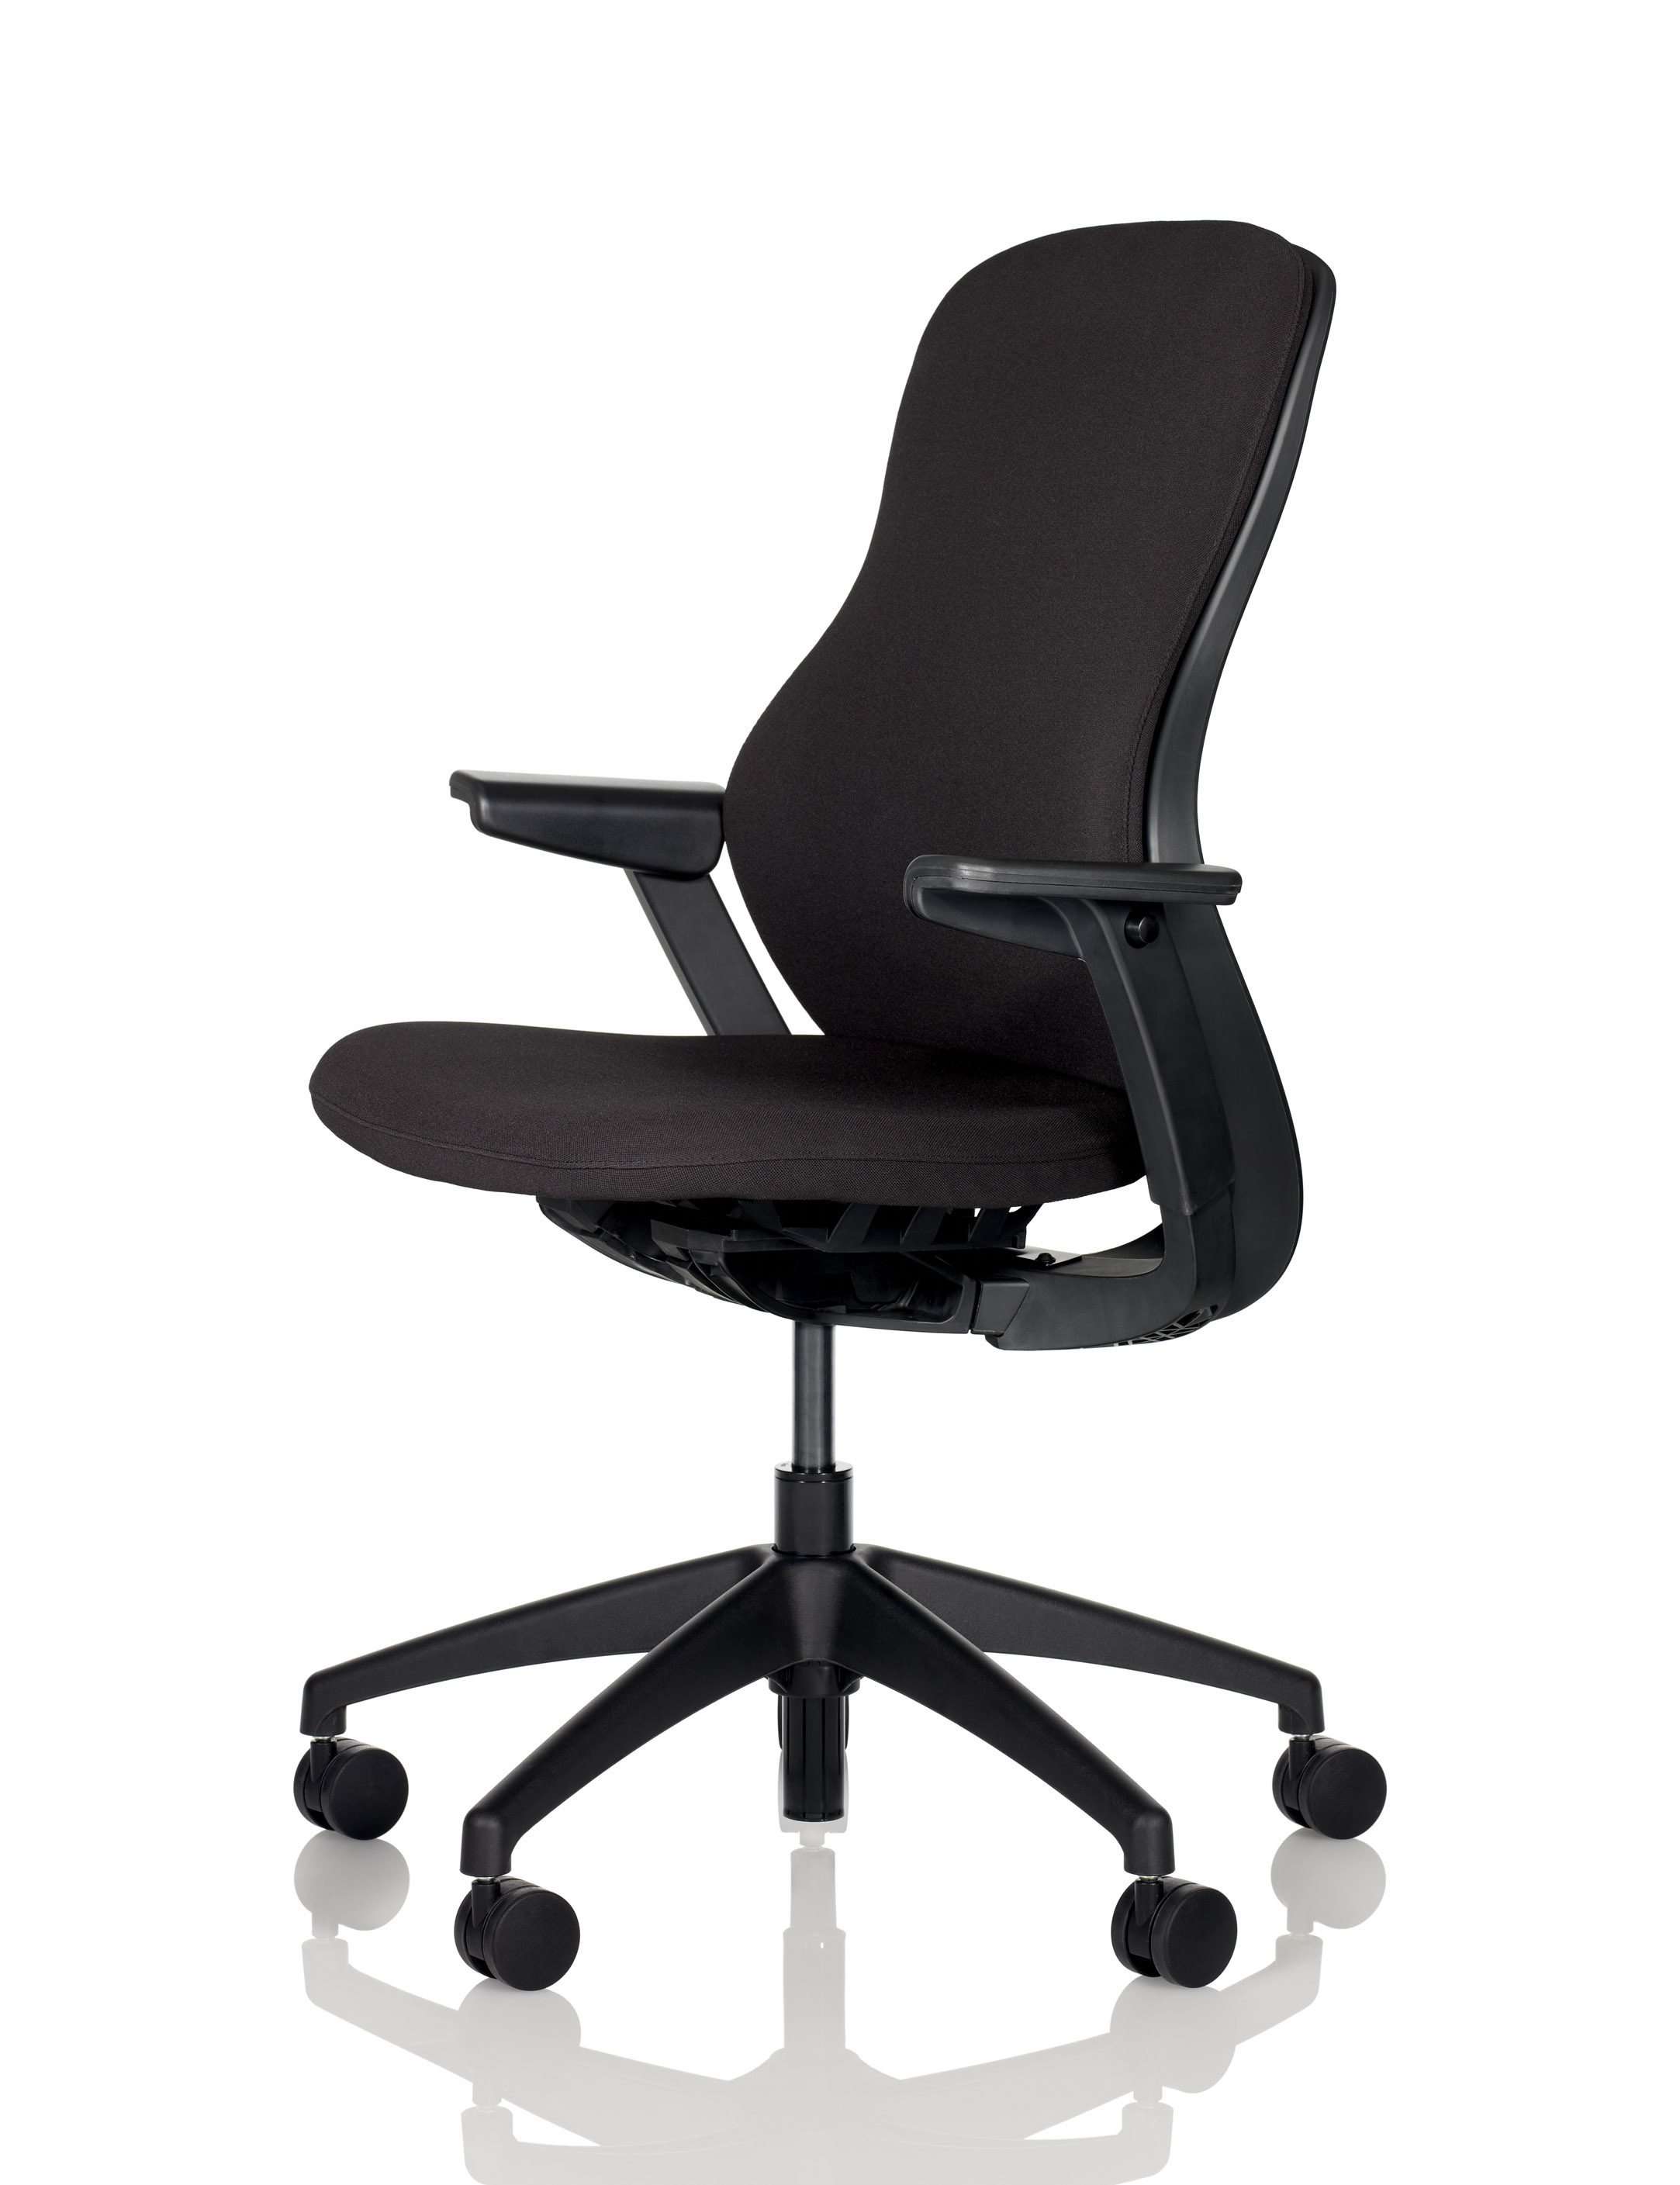 ReGeneration by Knoll Fully Upholstered Ergonomic Chair